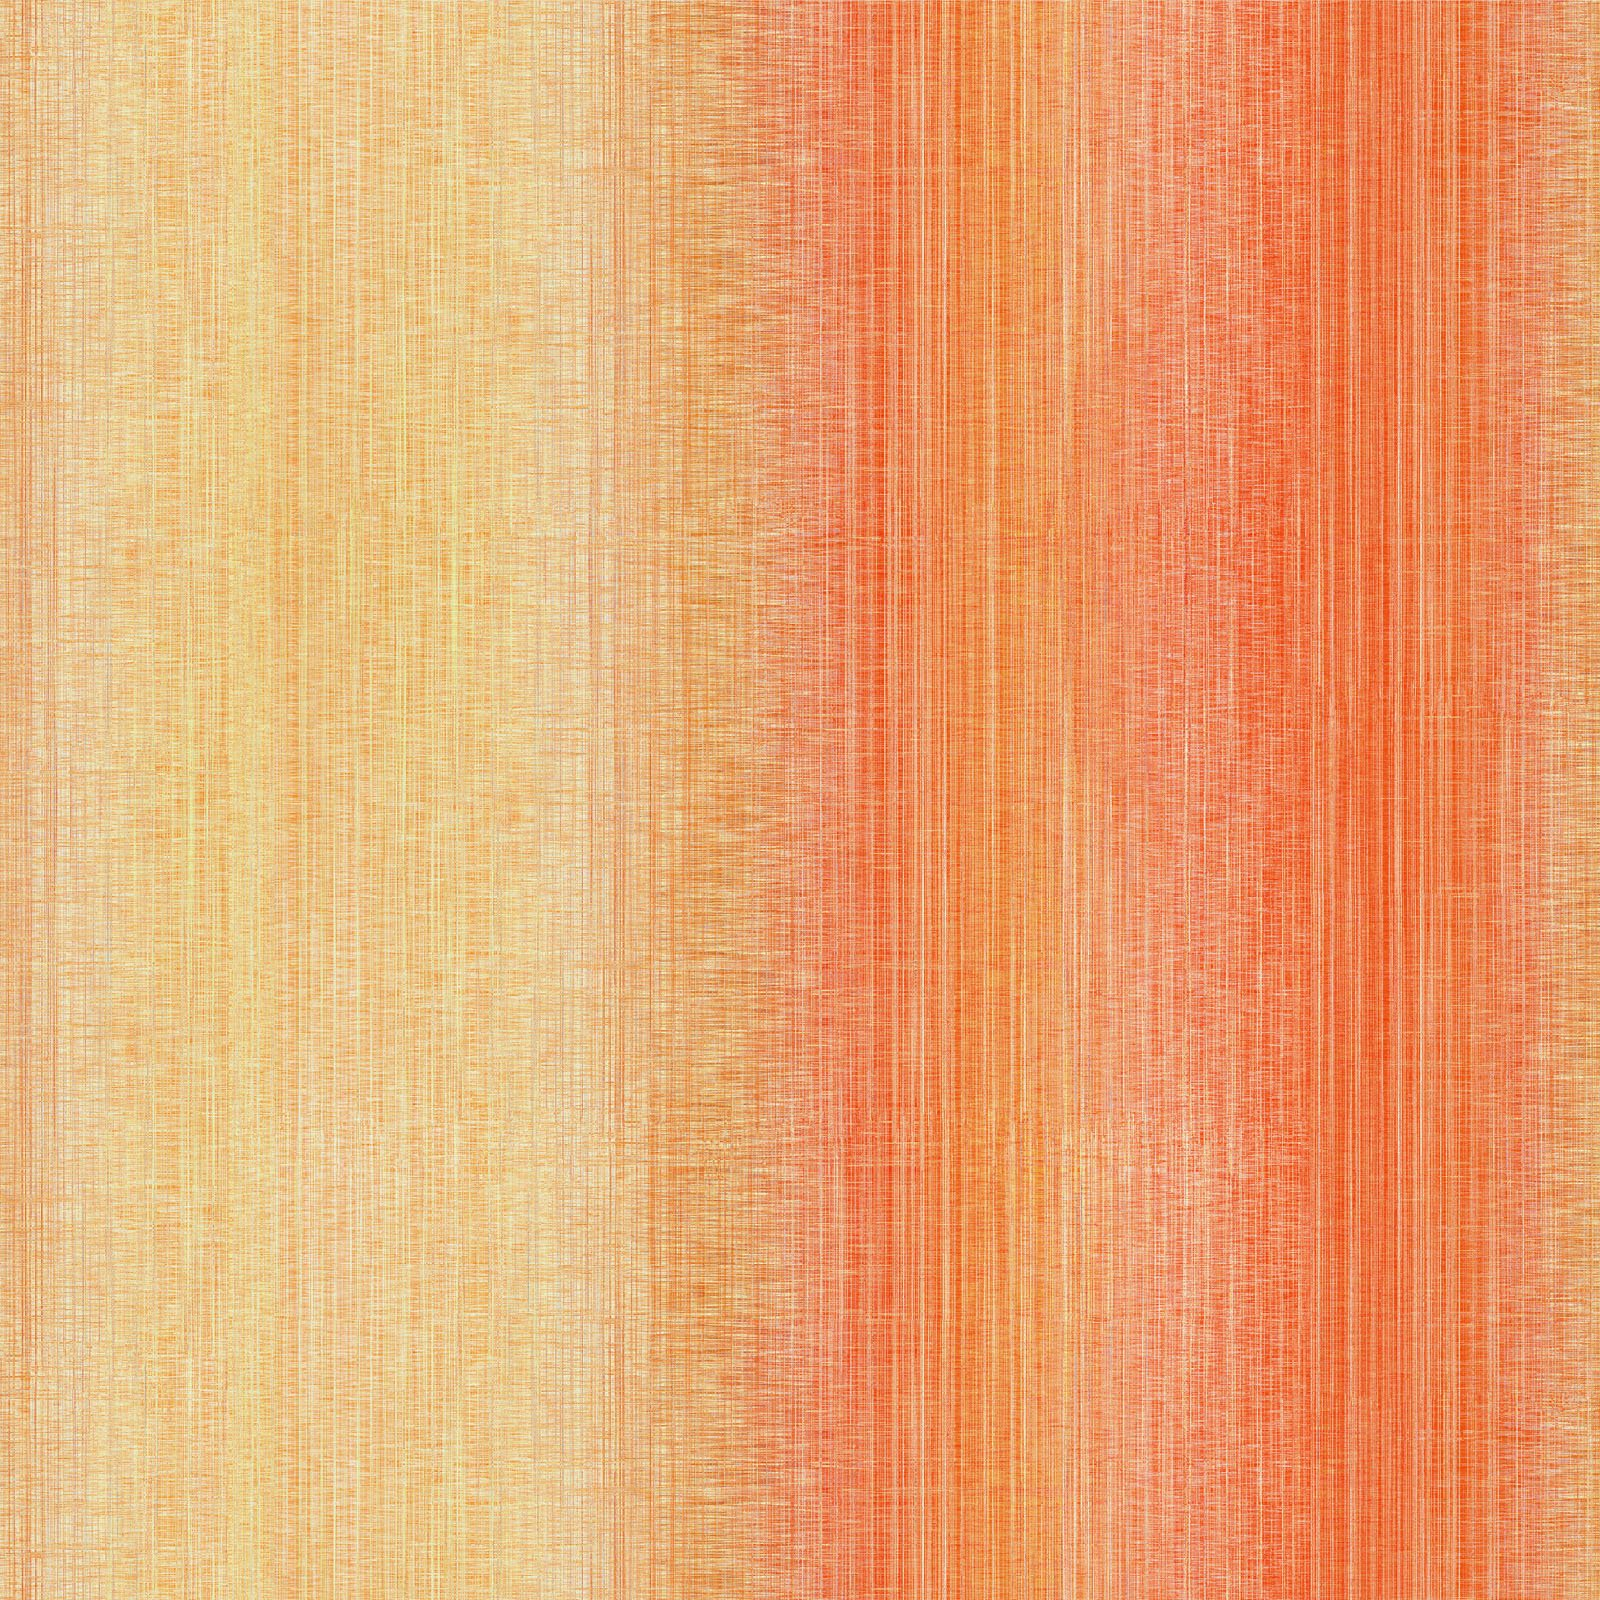 OMBR-4498 J - OMBRE 108 DIGITAL BY P&B BOUTIQUE PEACH/ORANGE - ARRIVING IN AUGUST 2021